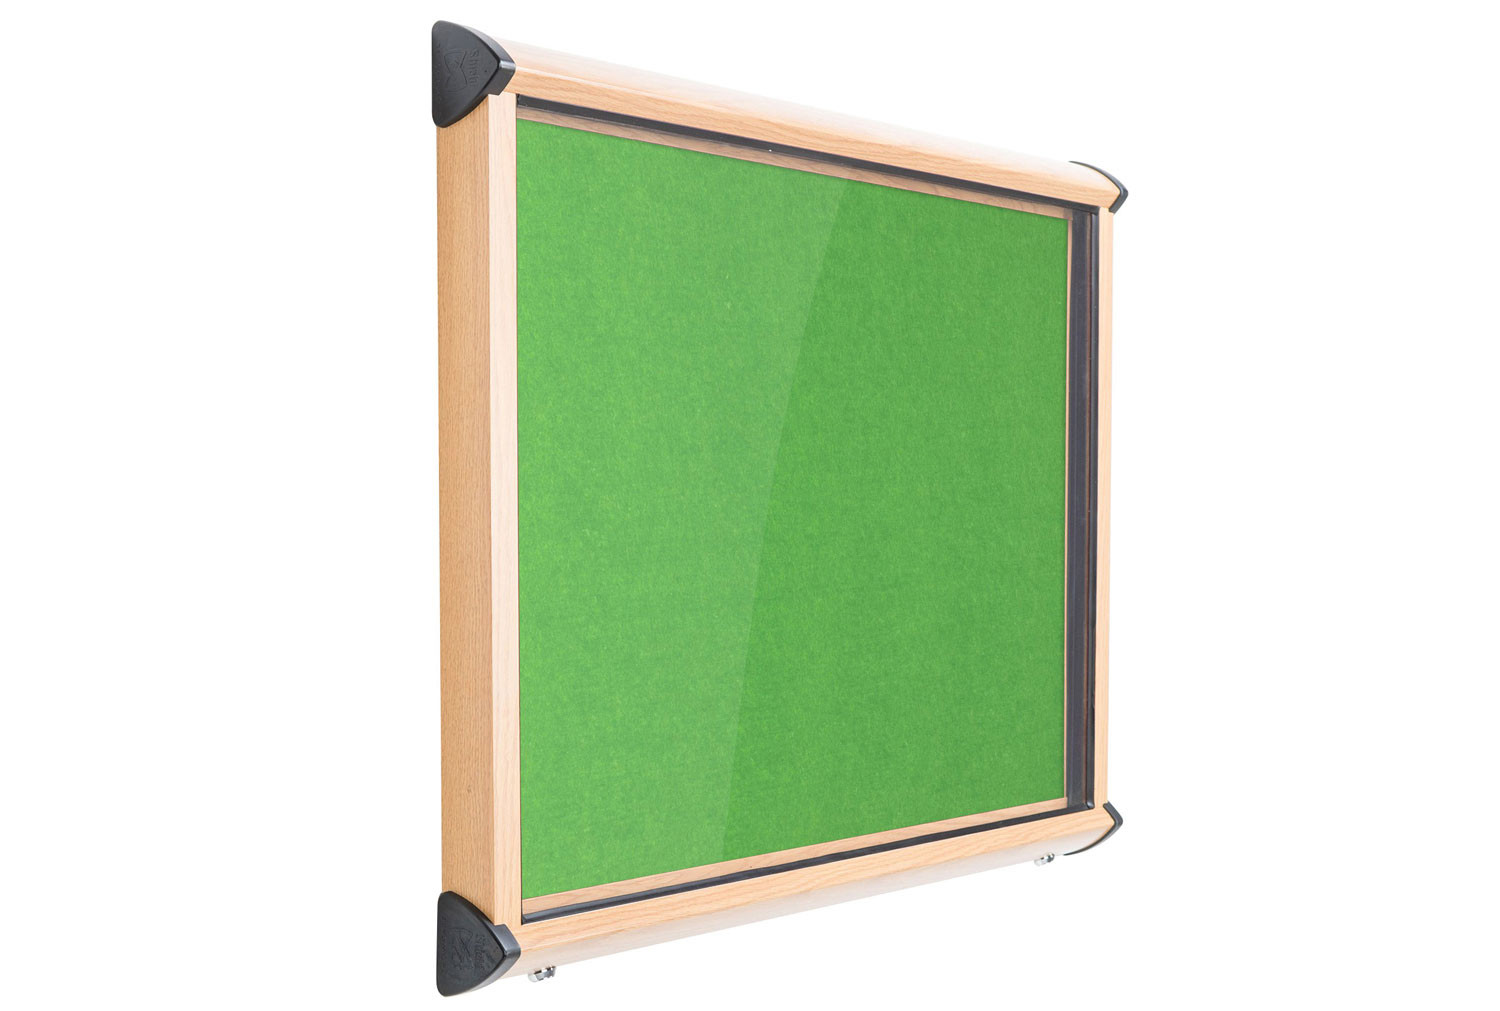 Resist A Flame Shield Eco Colour Wood Effect Framed Showcase